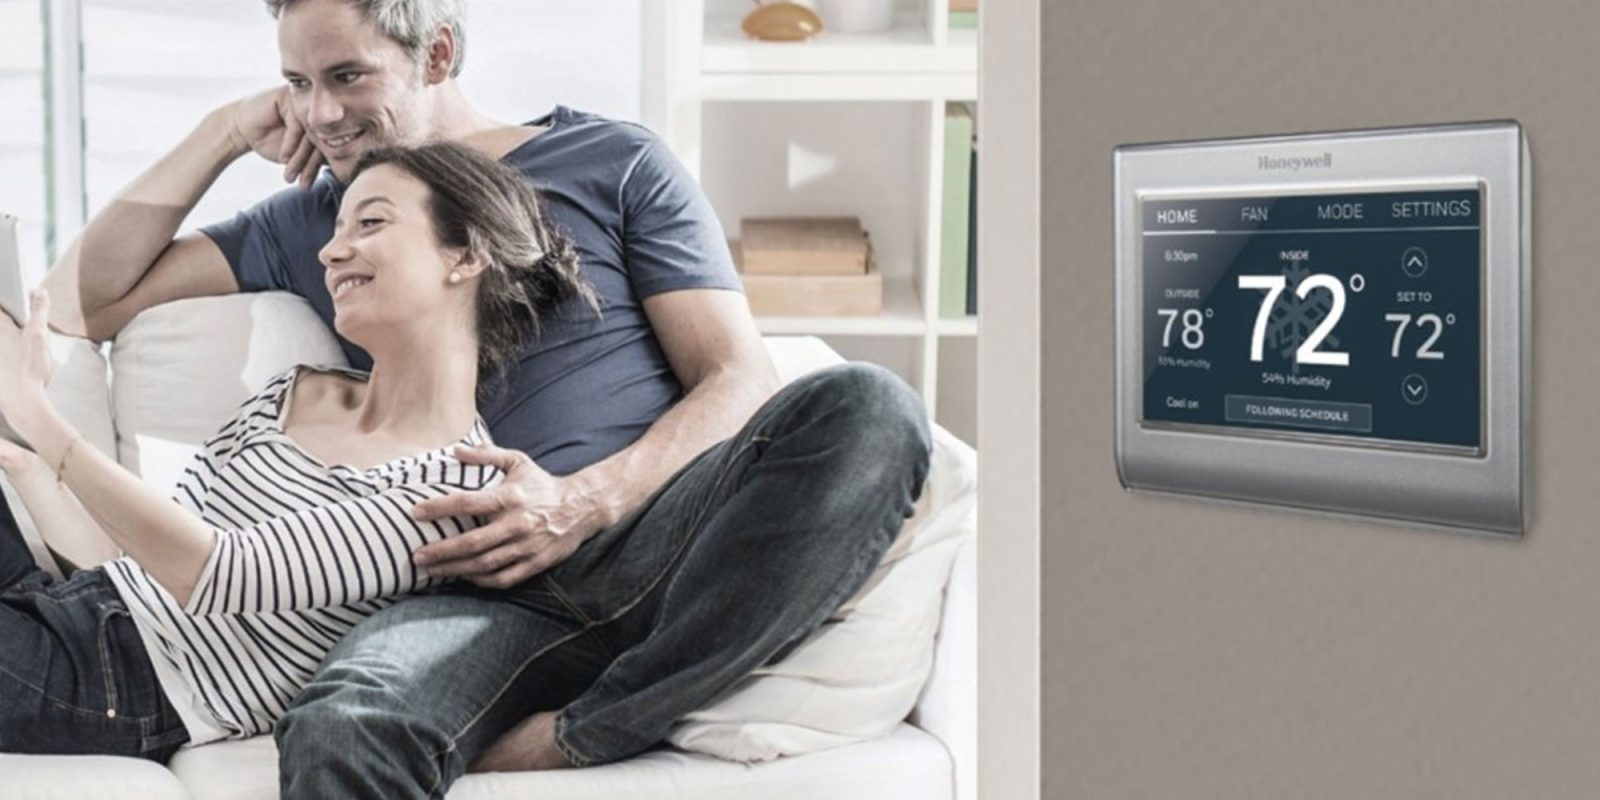 Honeywell's Smart Color Thermostat drops to $140 shipped (Reg. $200)